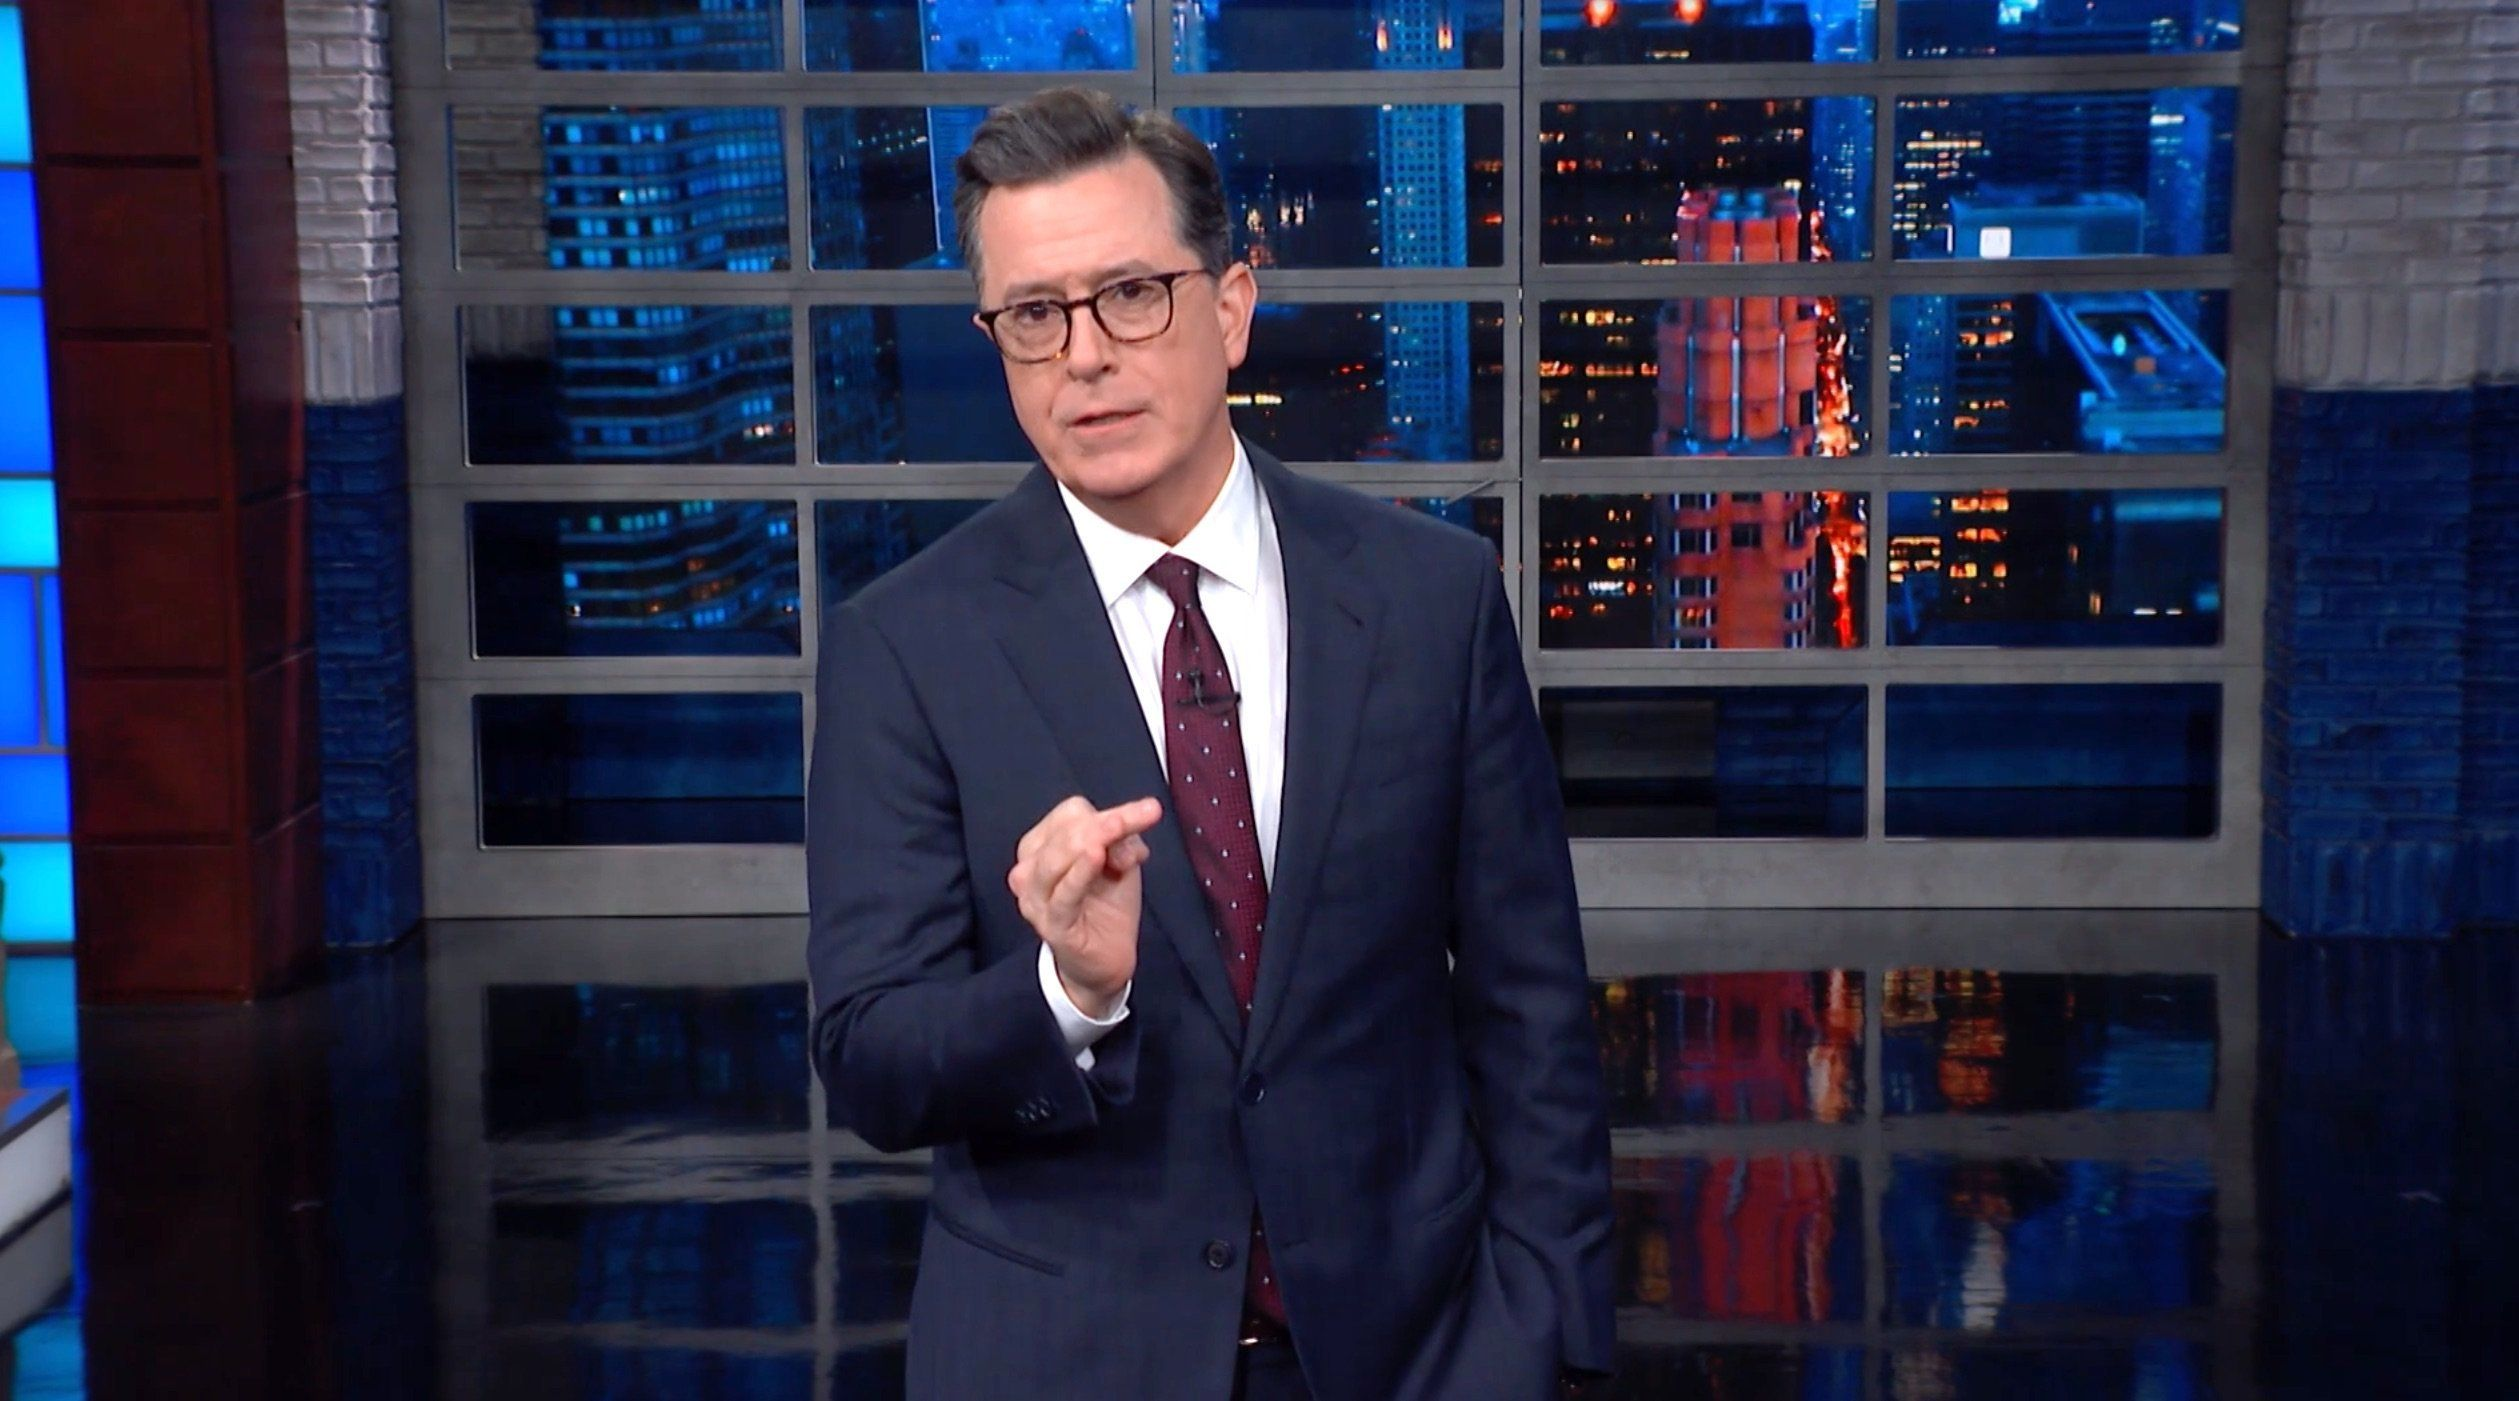 Colbert Uses Giuliani's Own Logic To Explain How Bad A Lawyer He Is